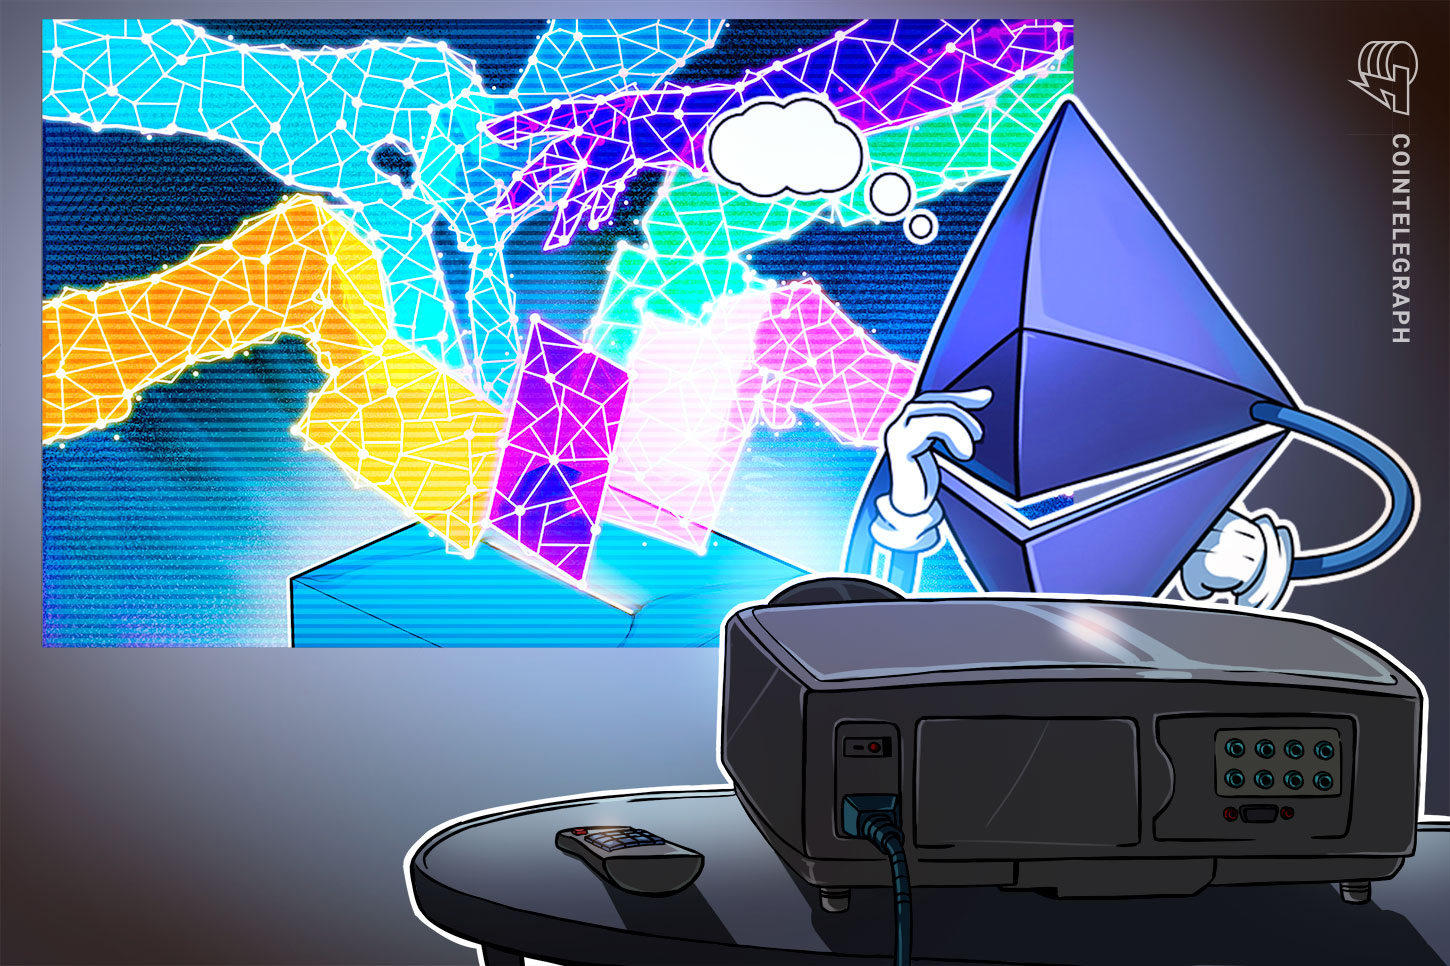 AP News publishes US presidential election results on the blockchain